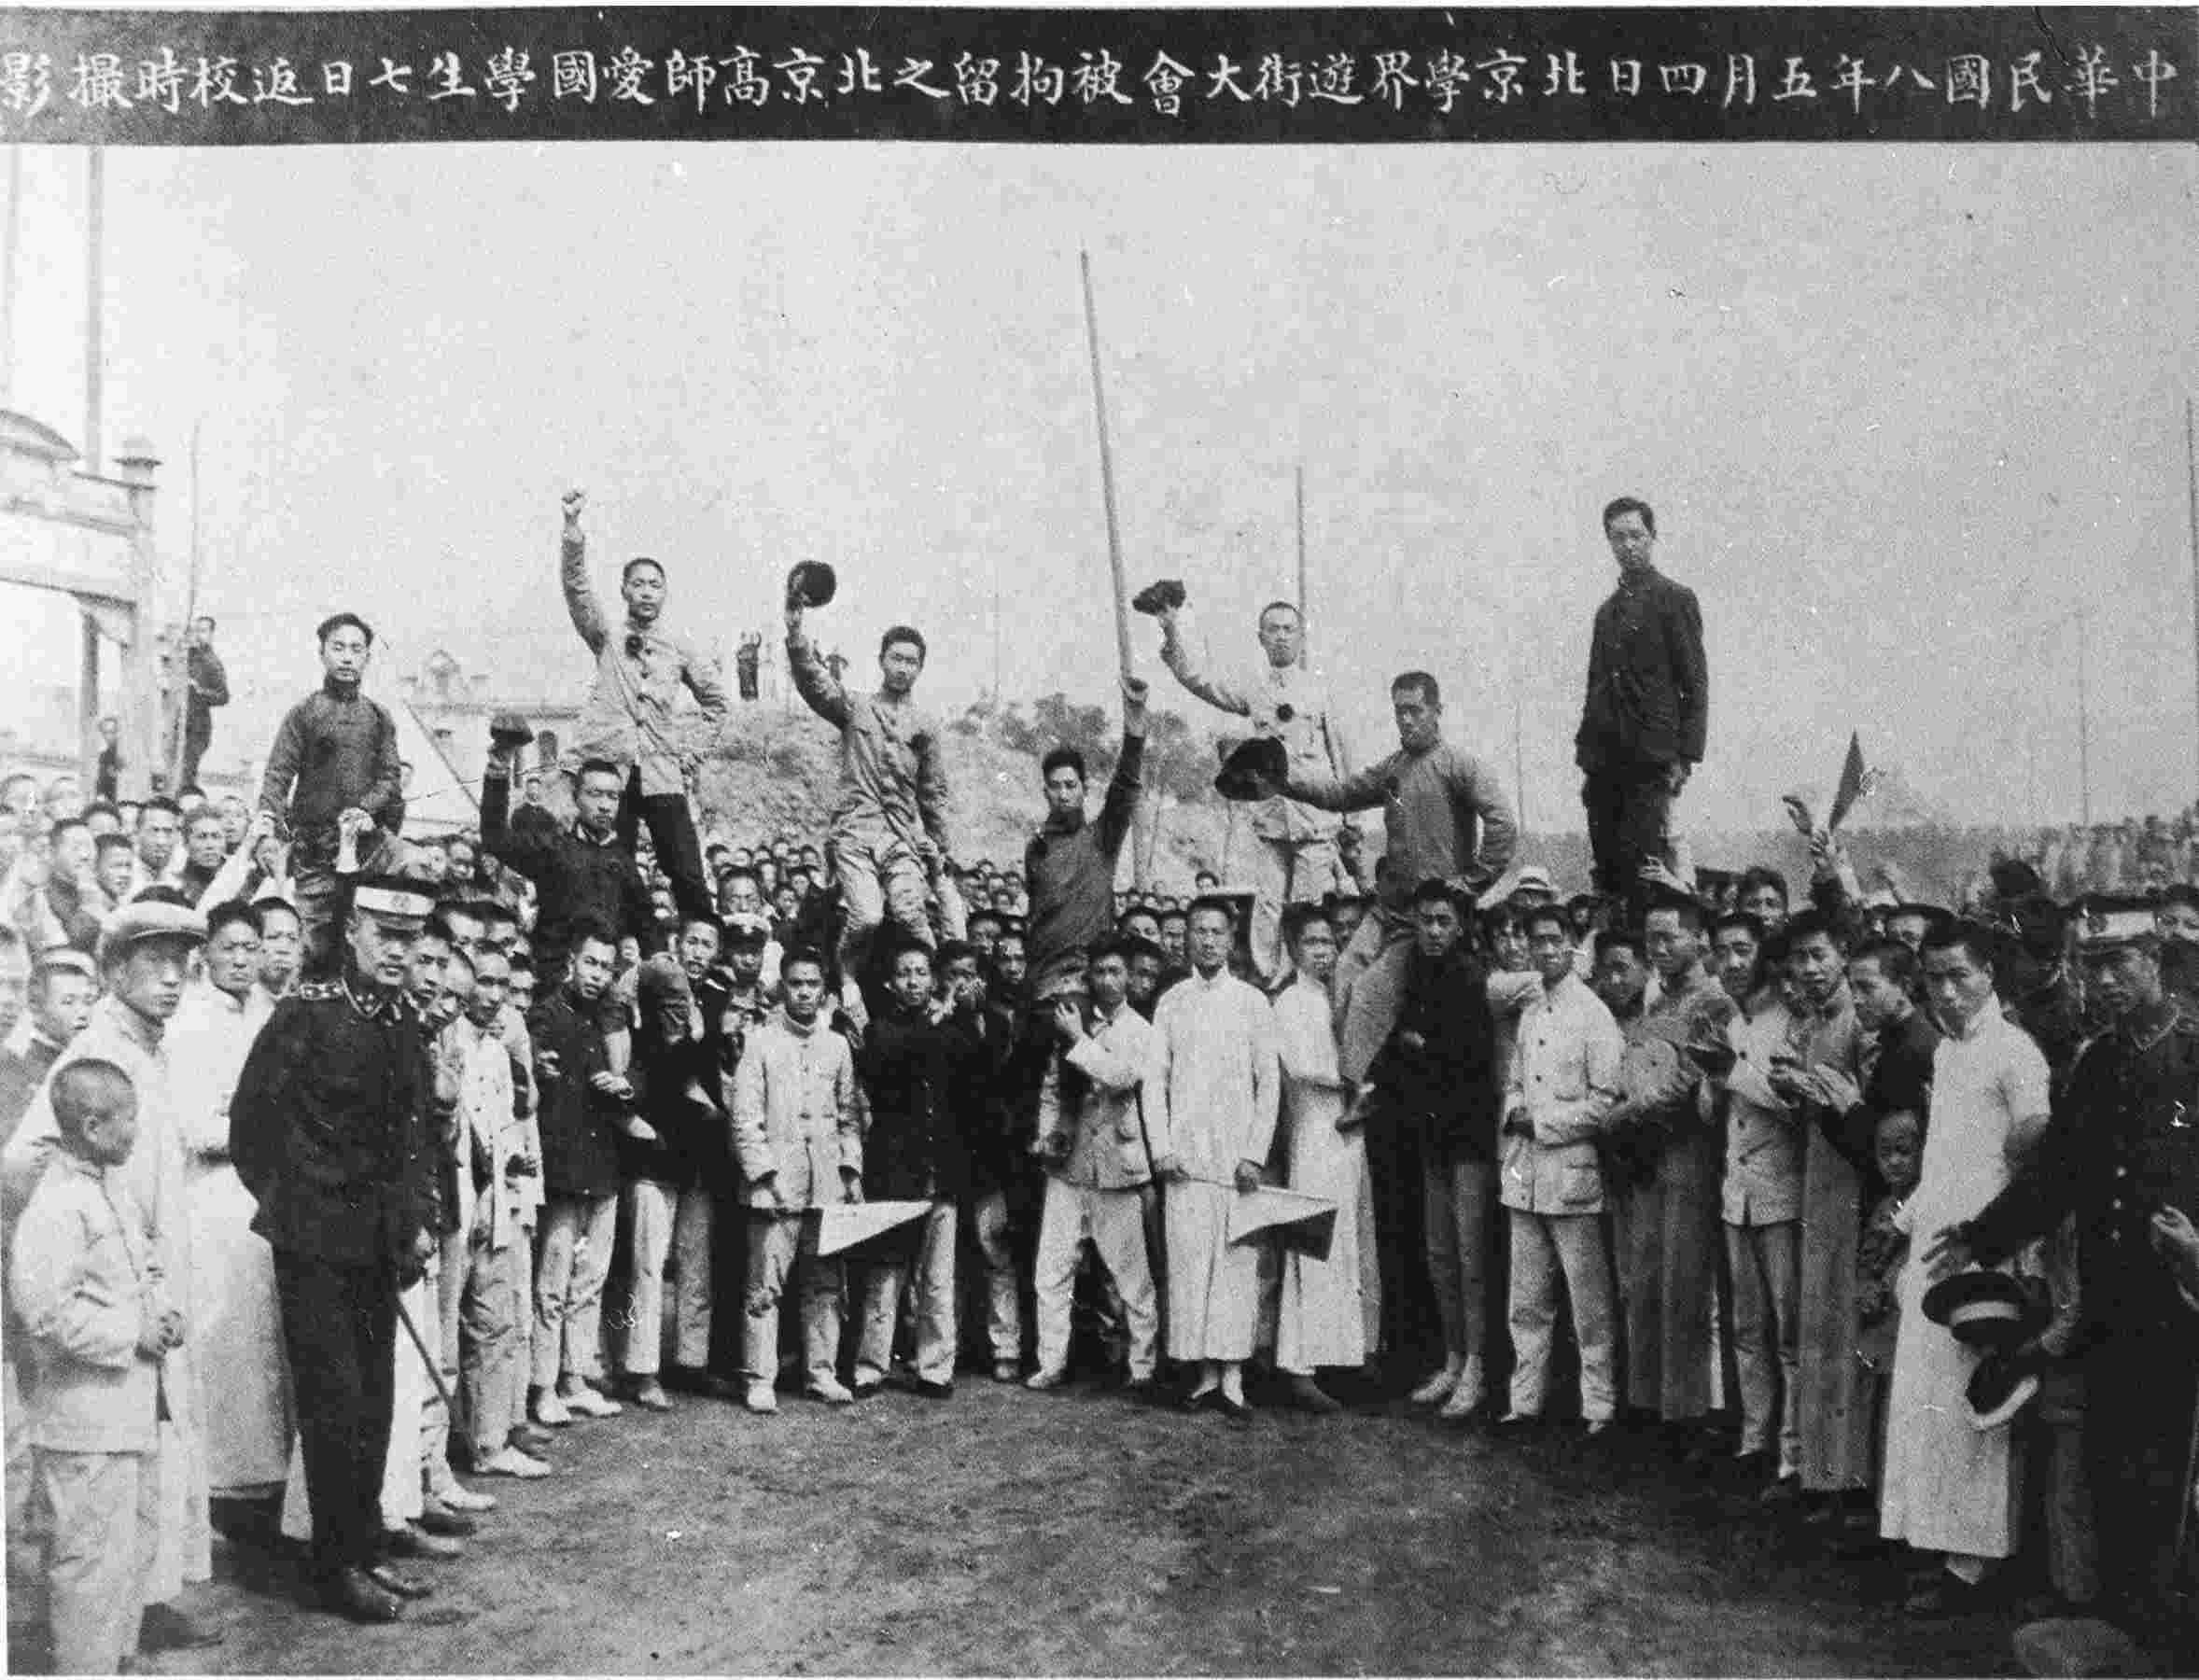 the may 4th movement in china The may 4th movement (五四运动) which broke out in 1919 was a great anti-imperialist, anti-feudal revolutionary movementit marked the beginning of the new-democratic revolution in china.